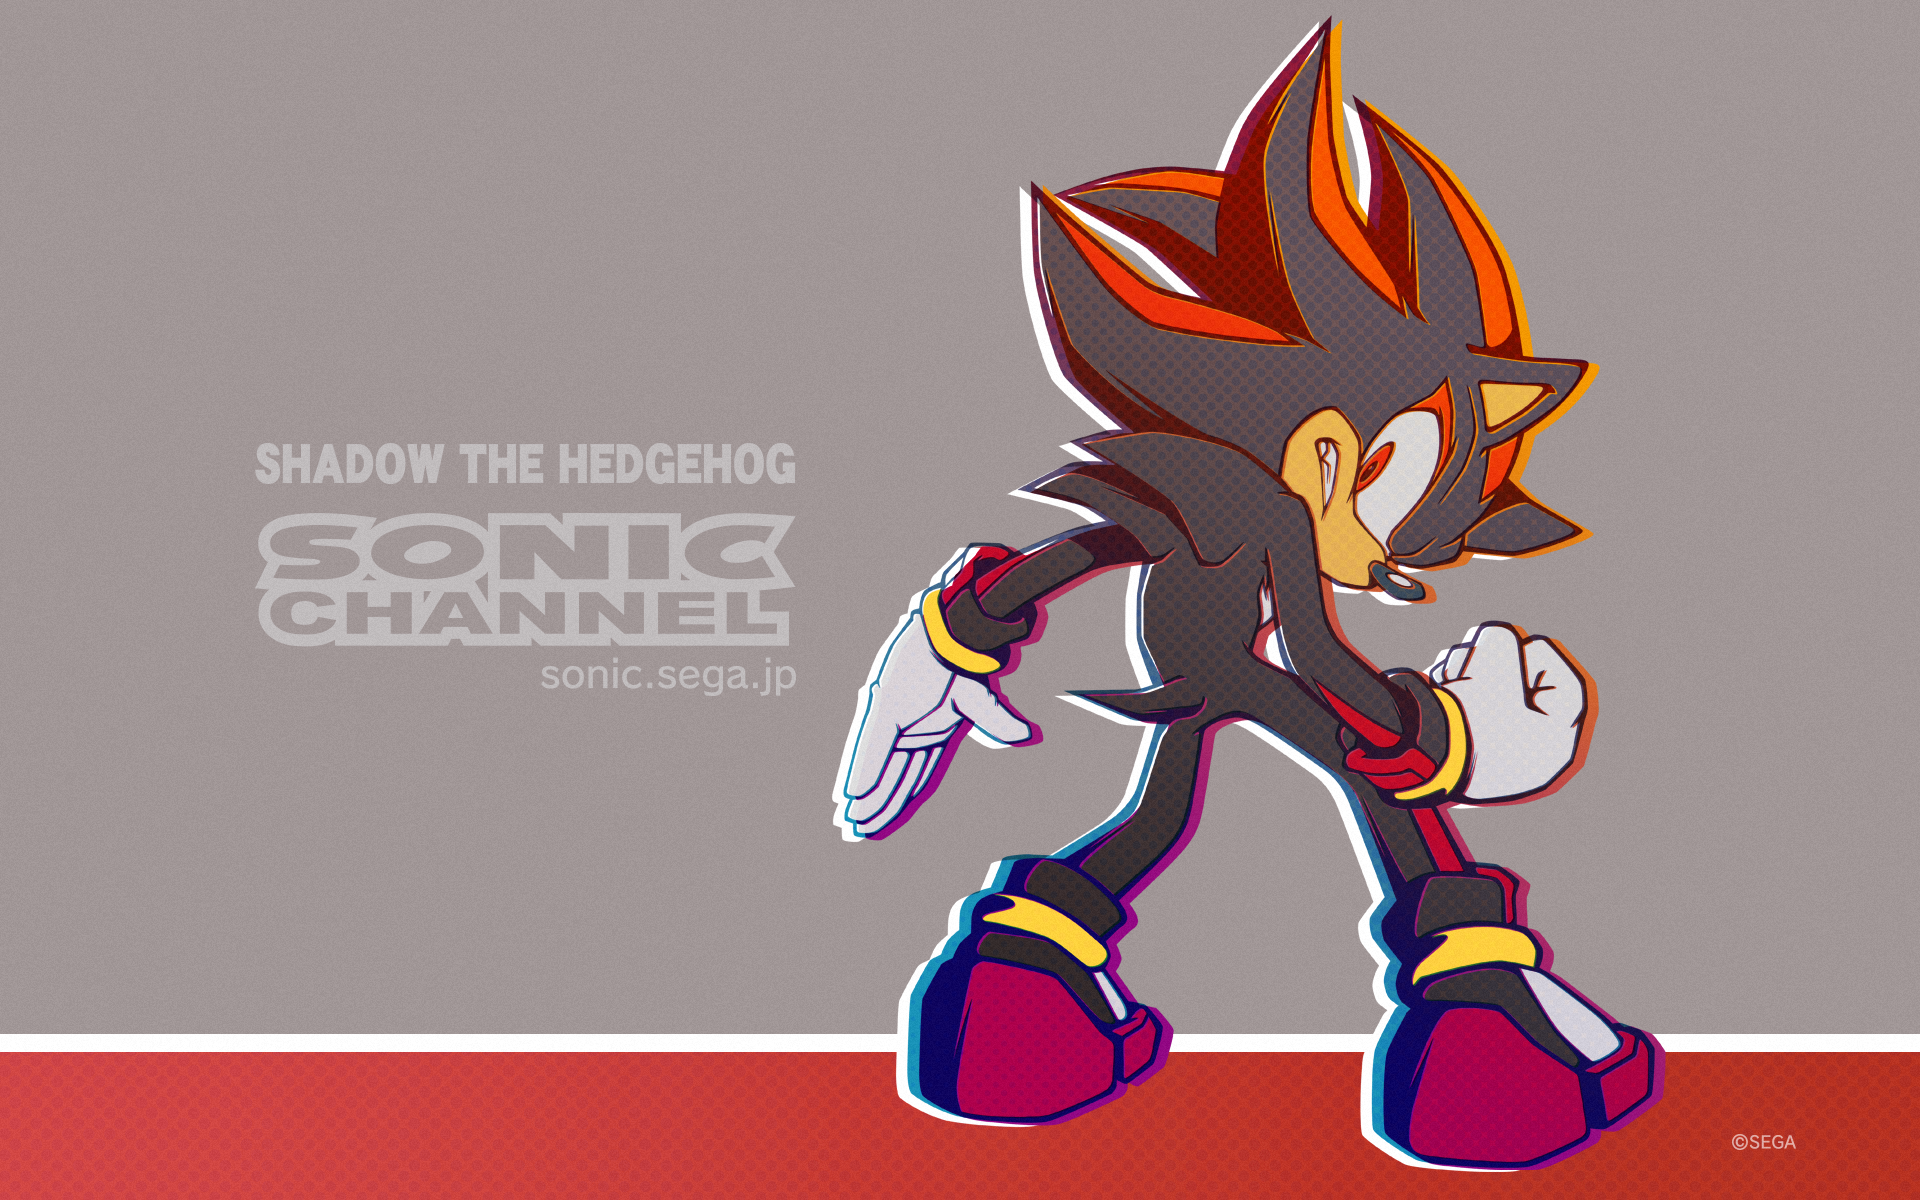 http://sonic.sega.jp/SonicChannel/enjoy/image/wallpaper_191_shadow_15_pc.png